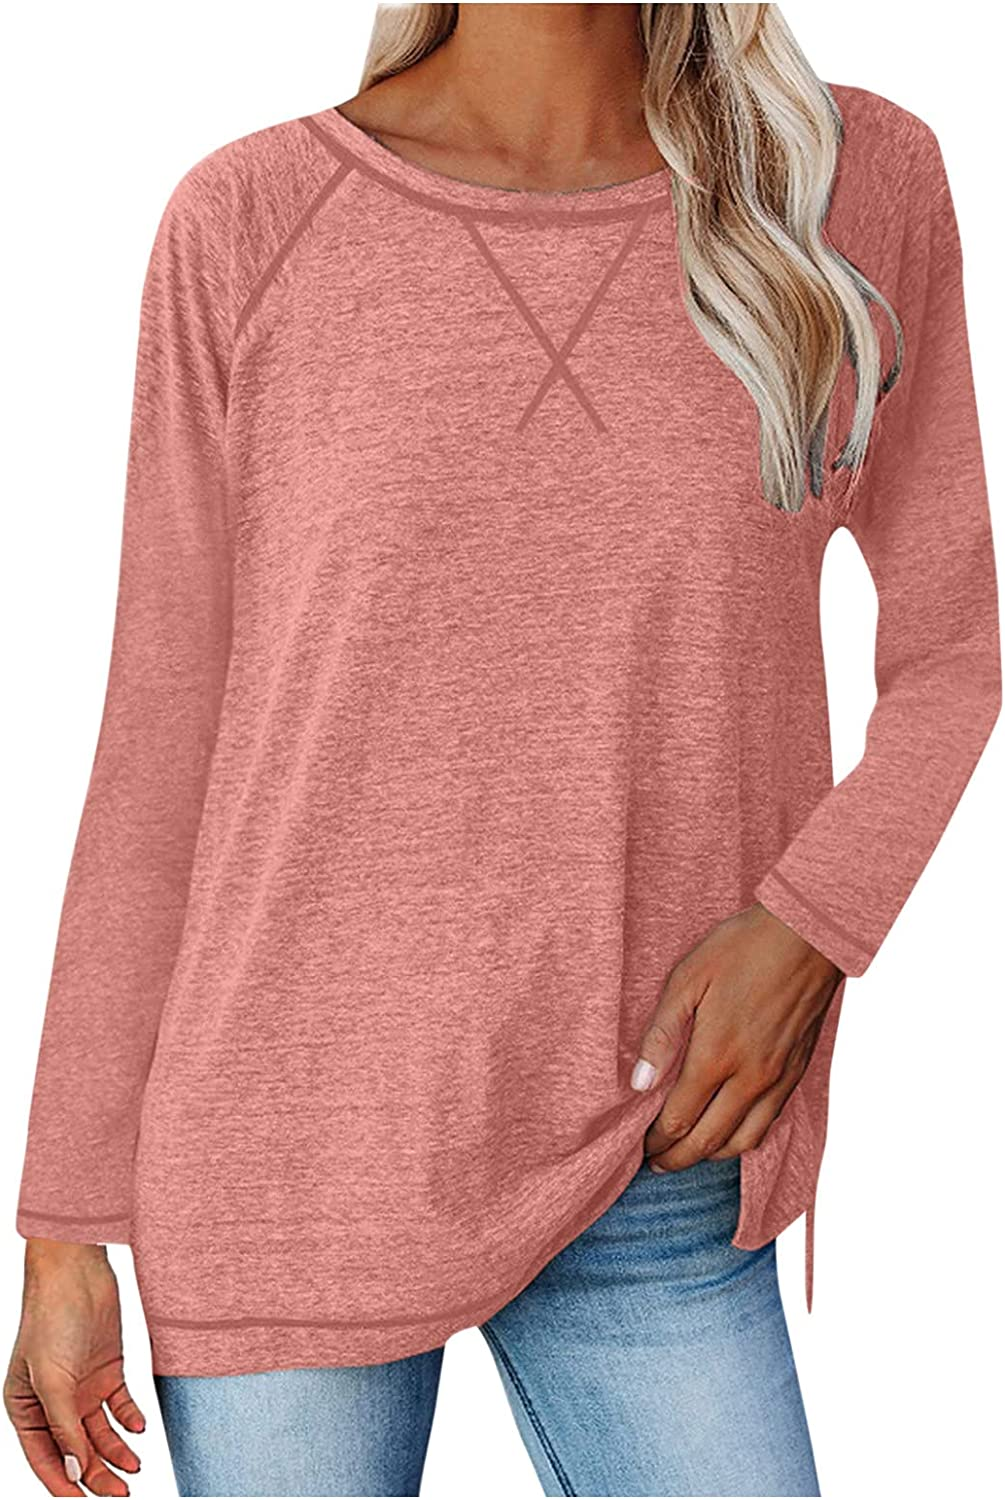 Shirts for Al sold out. Women Basic Solid Color Neck Tops Sleeve Sale O Casua Long